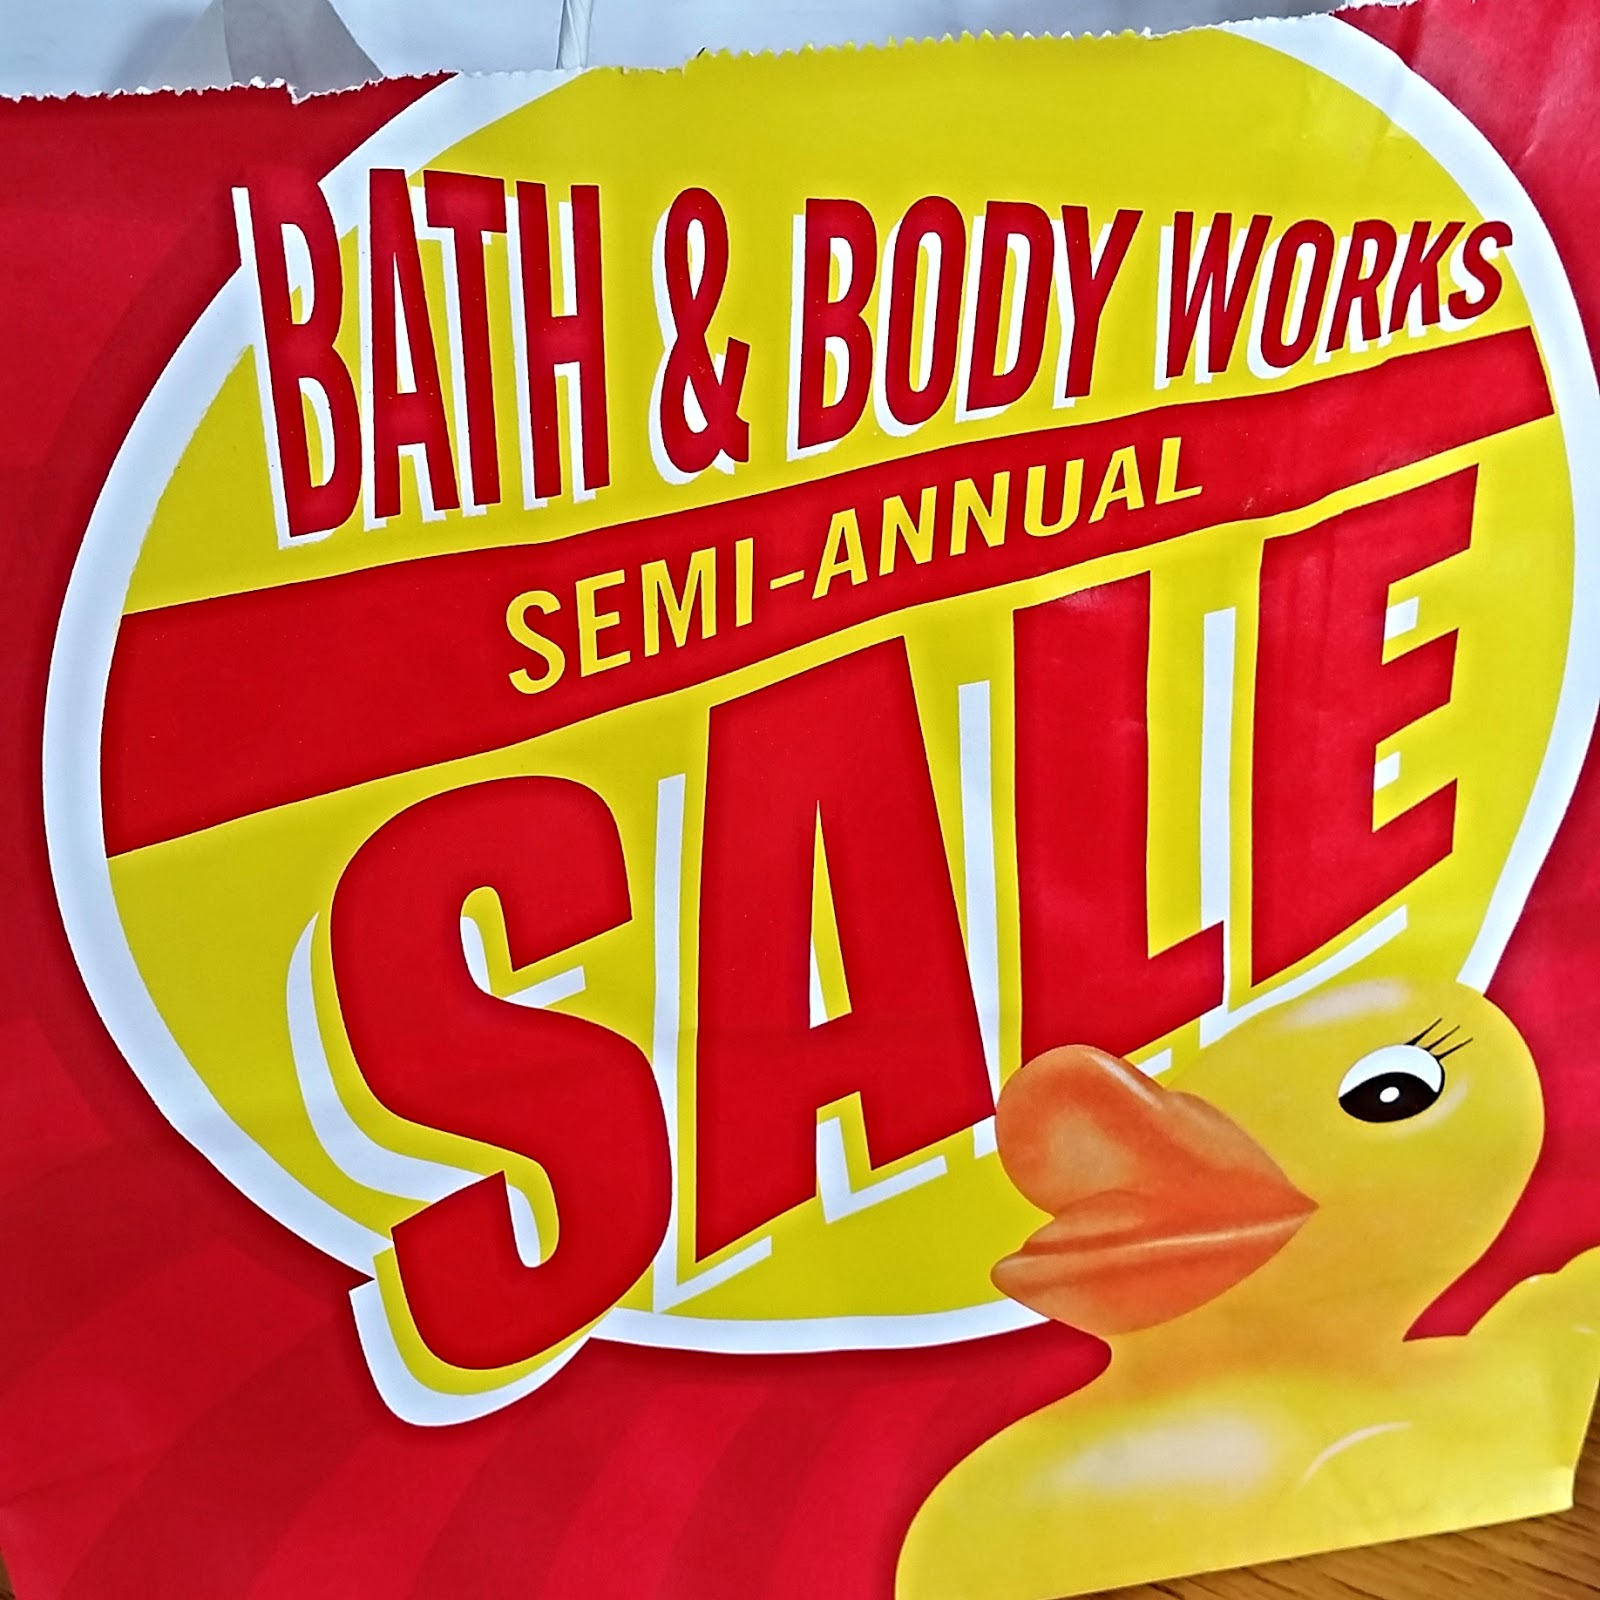 If you're looking for a Bath and Body Works sale, you've come to the perfect place. Our Bath and Body Works Semi Annual Sale offers some of the best deals of the year! When is the Bath and Body Works Semi Annual Sale? One sale starts right after Christmas, and a .